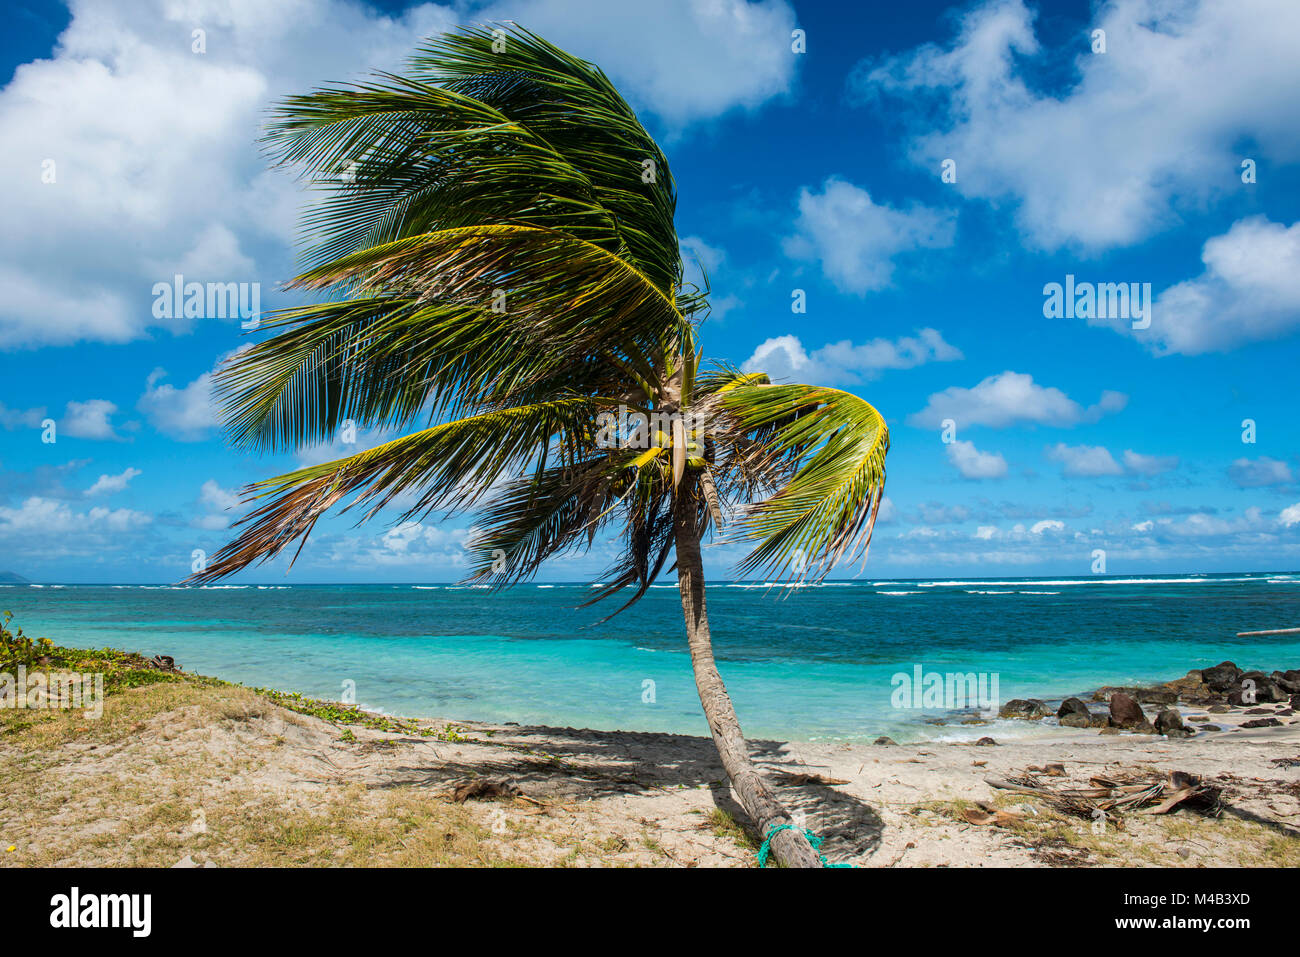 Beach at long haul bay Nevis island,St.Kitts and Nevis,Caribbean - Stock Image